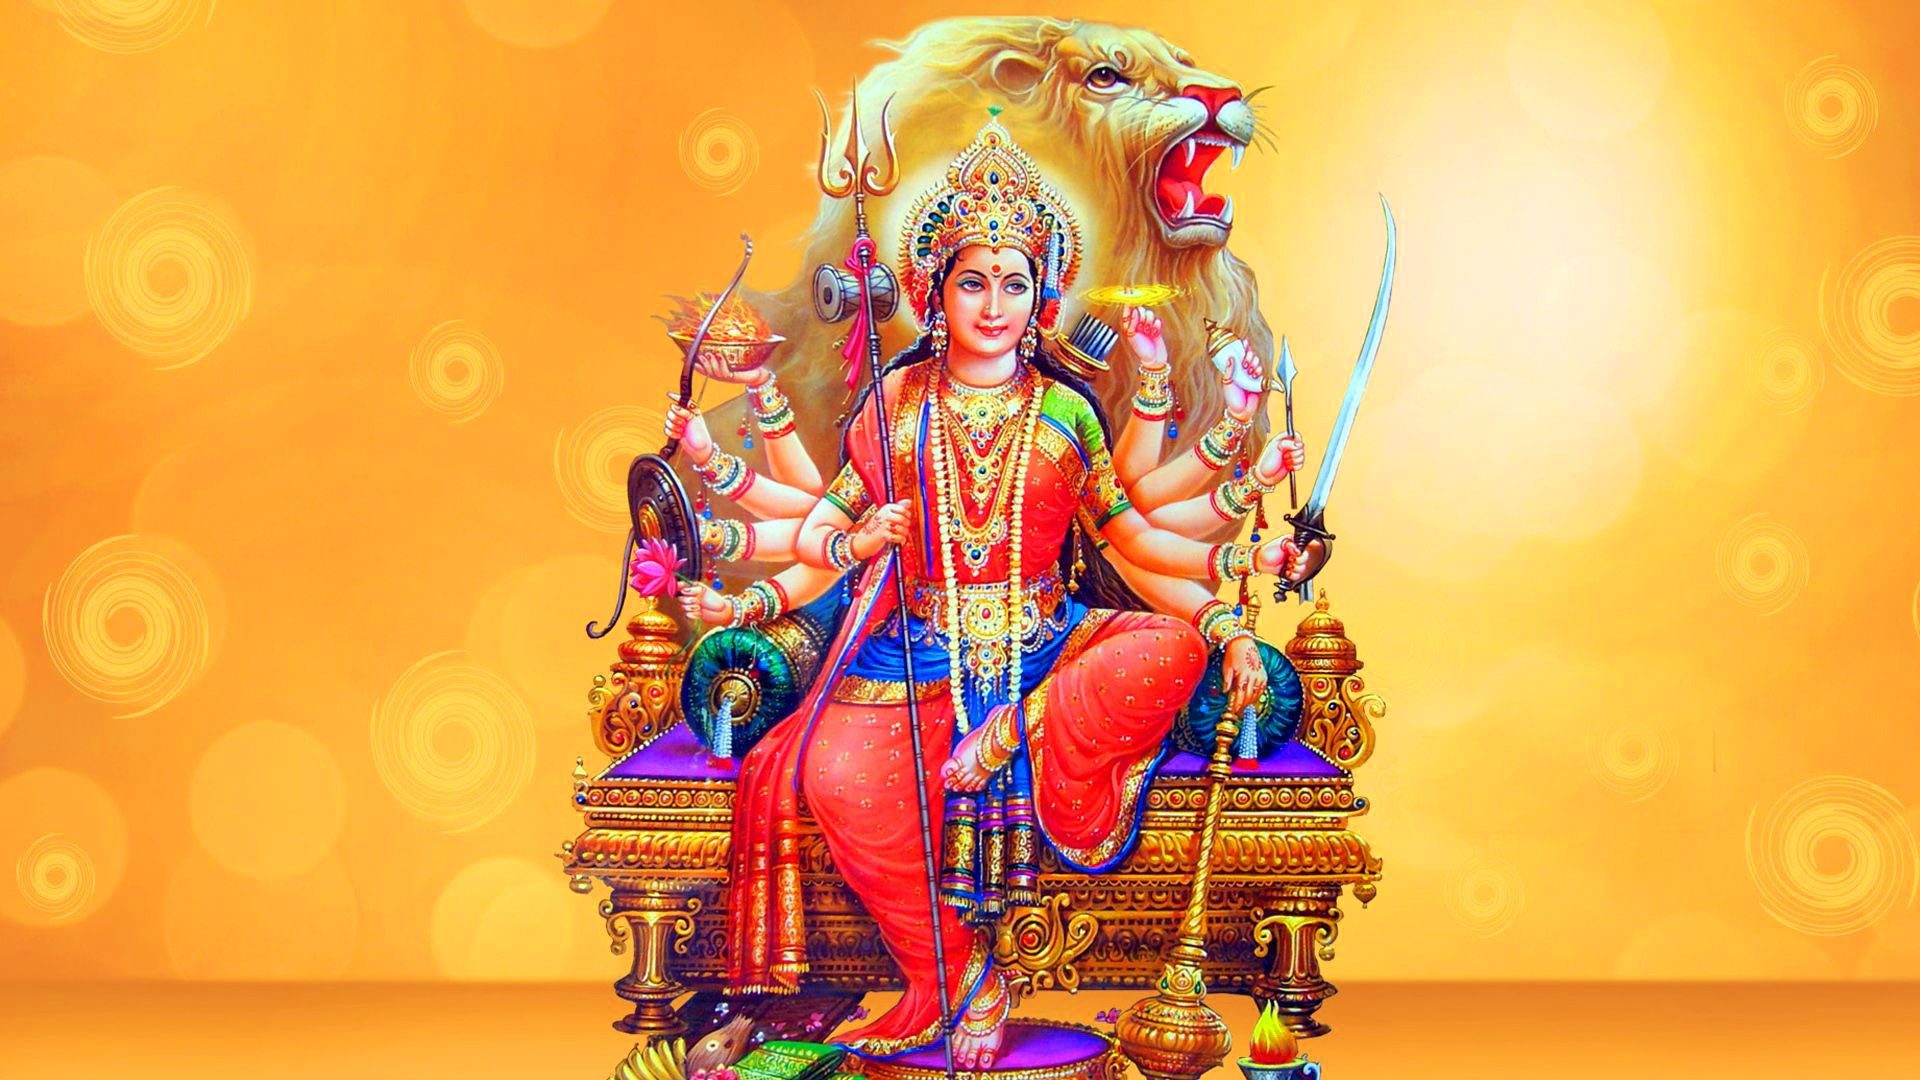 Beautiful Durga Maa Images photo download for